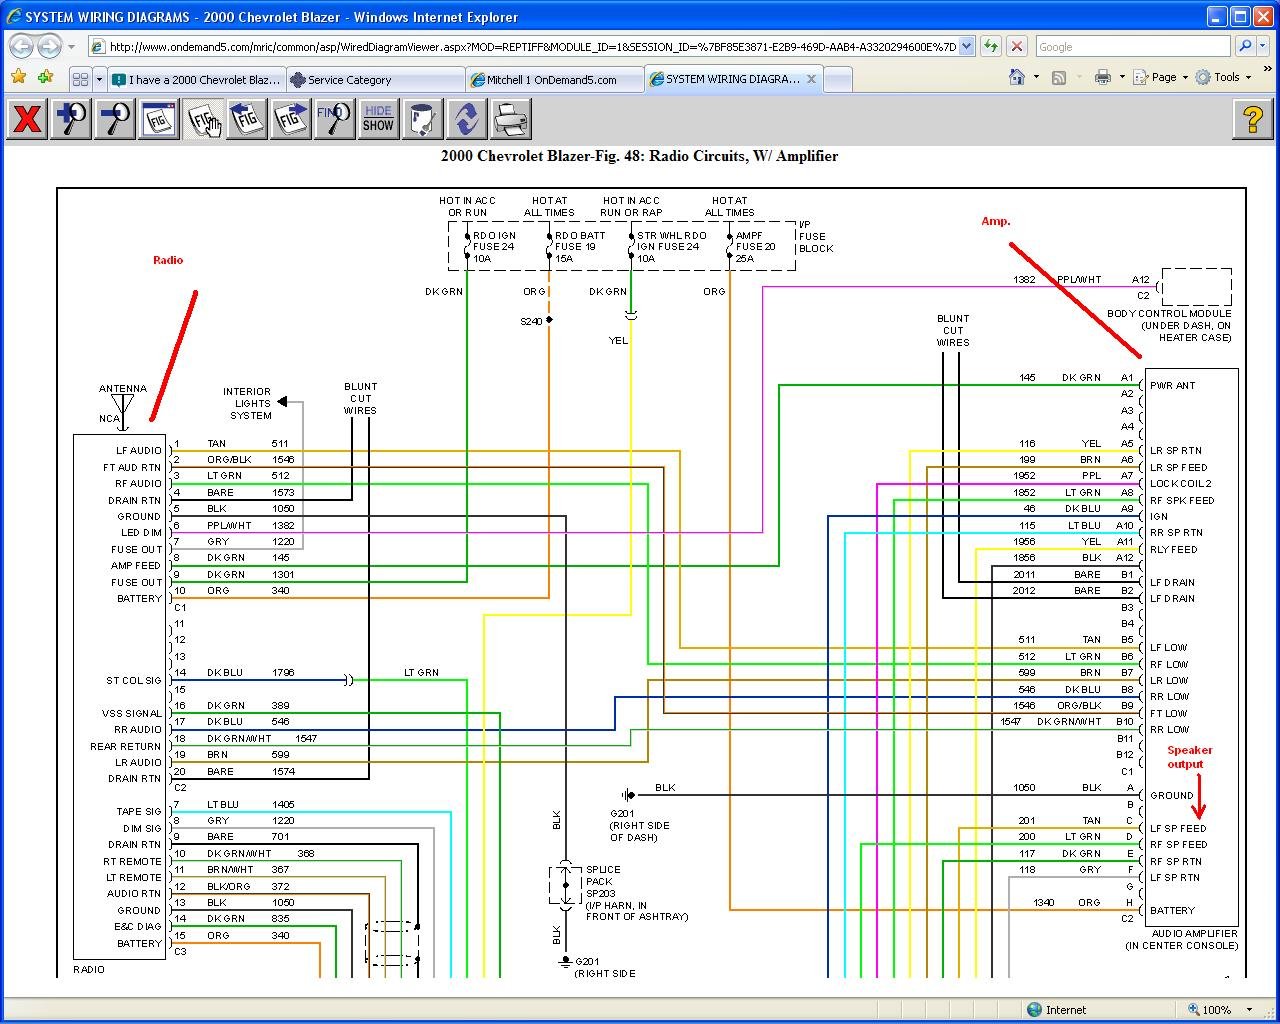 chevy suburban wiring diagram image 2001 suburban radio wiring diagram 2001 automotive wiring on 2000 chevy suburban wiring diagram